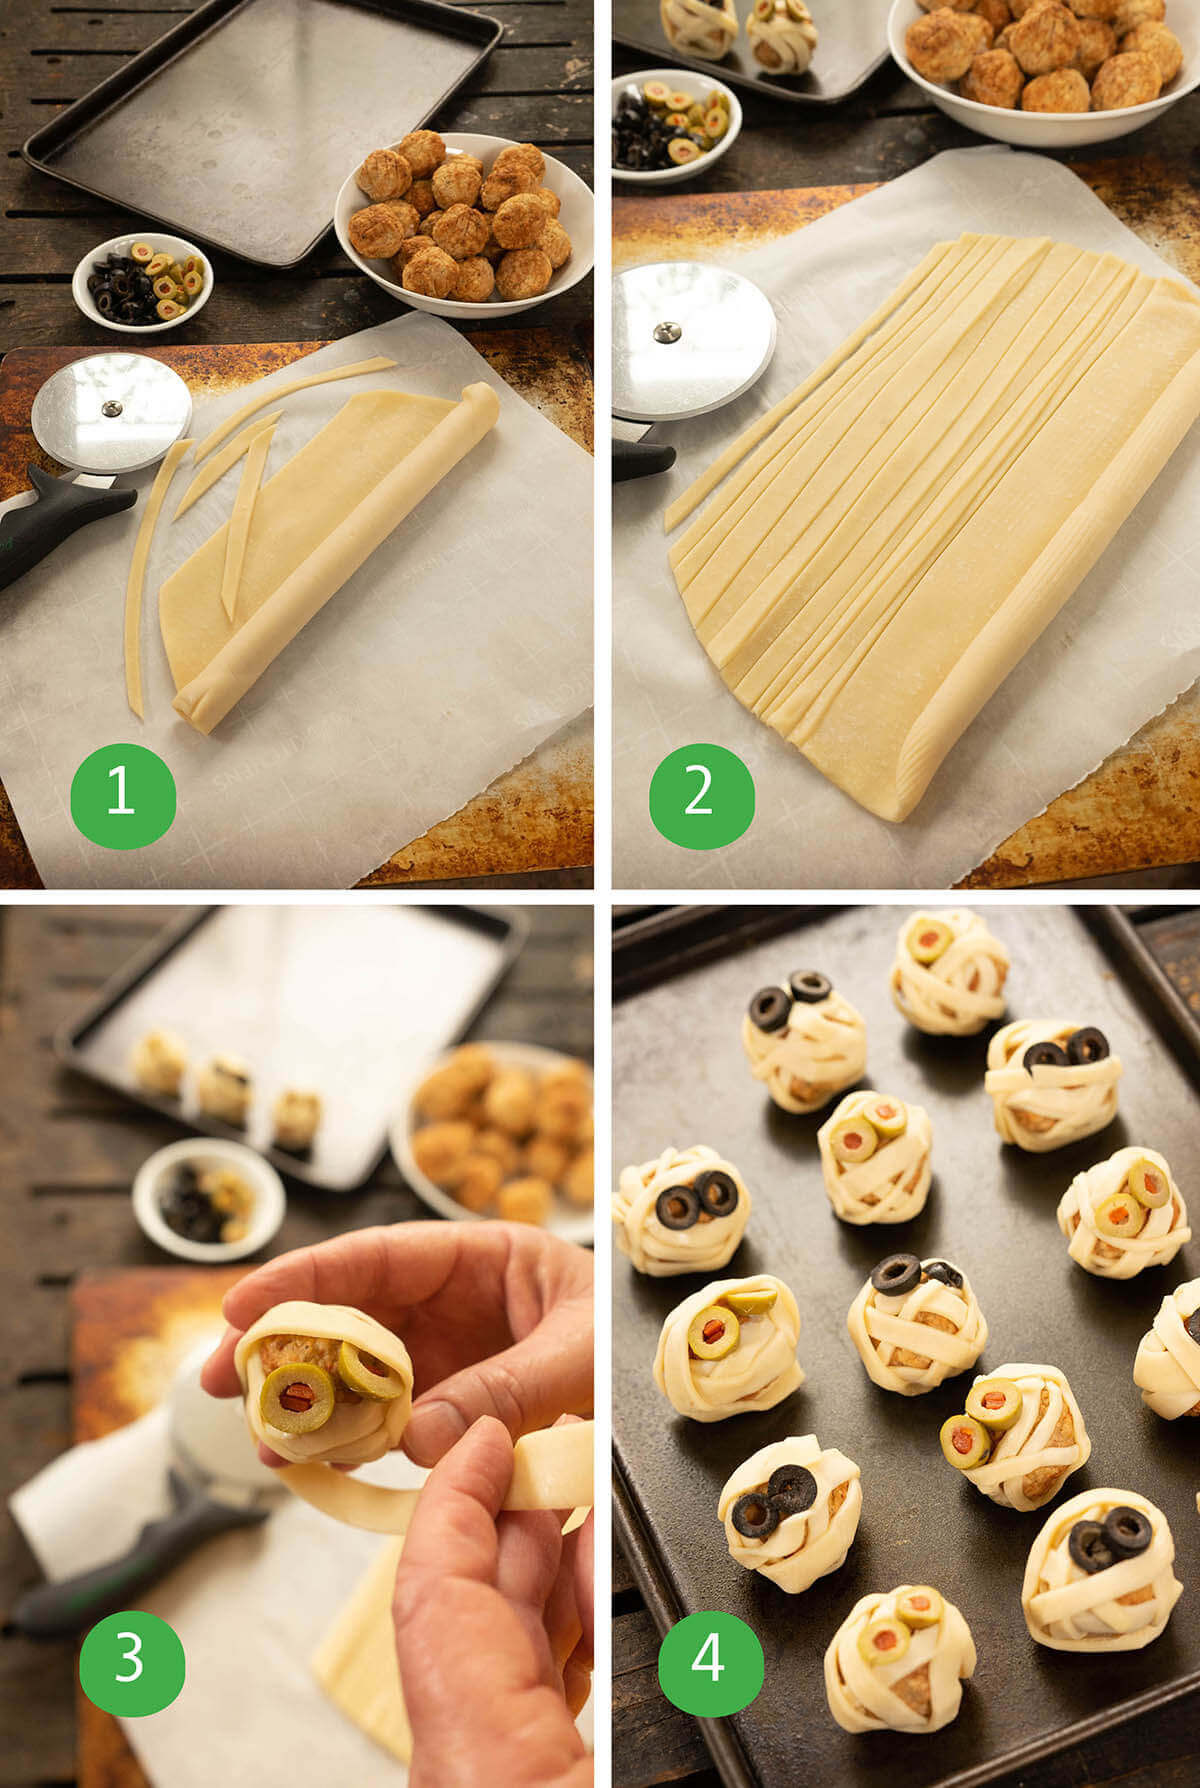 Step by step instructions to make appetizer.